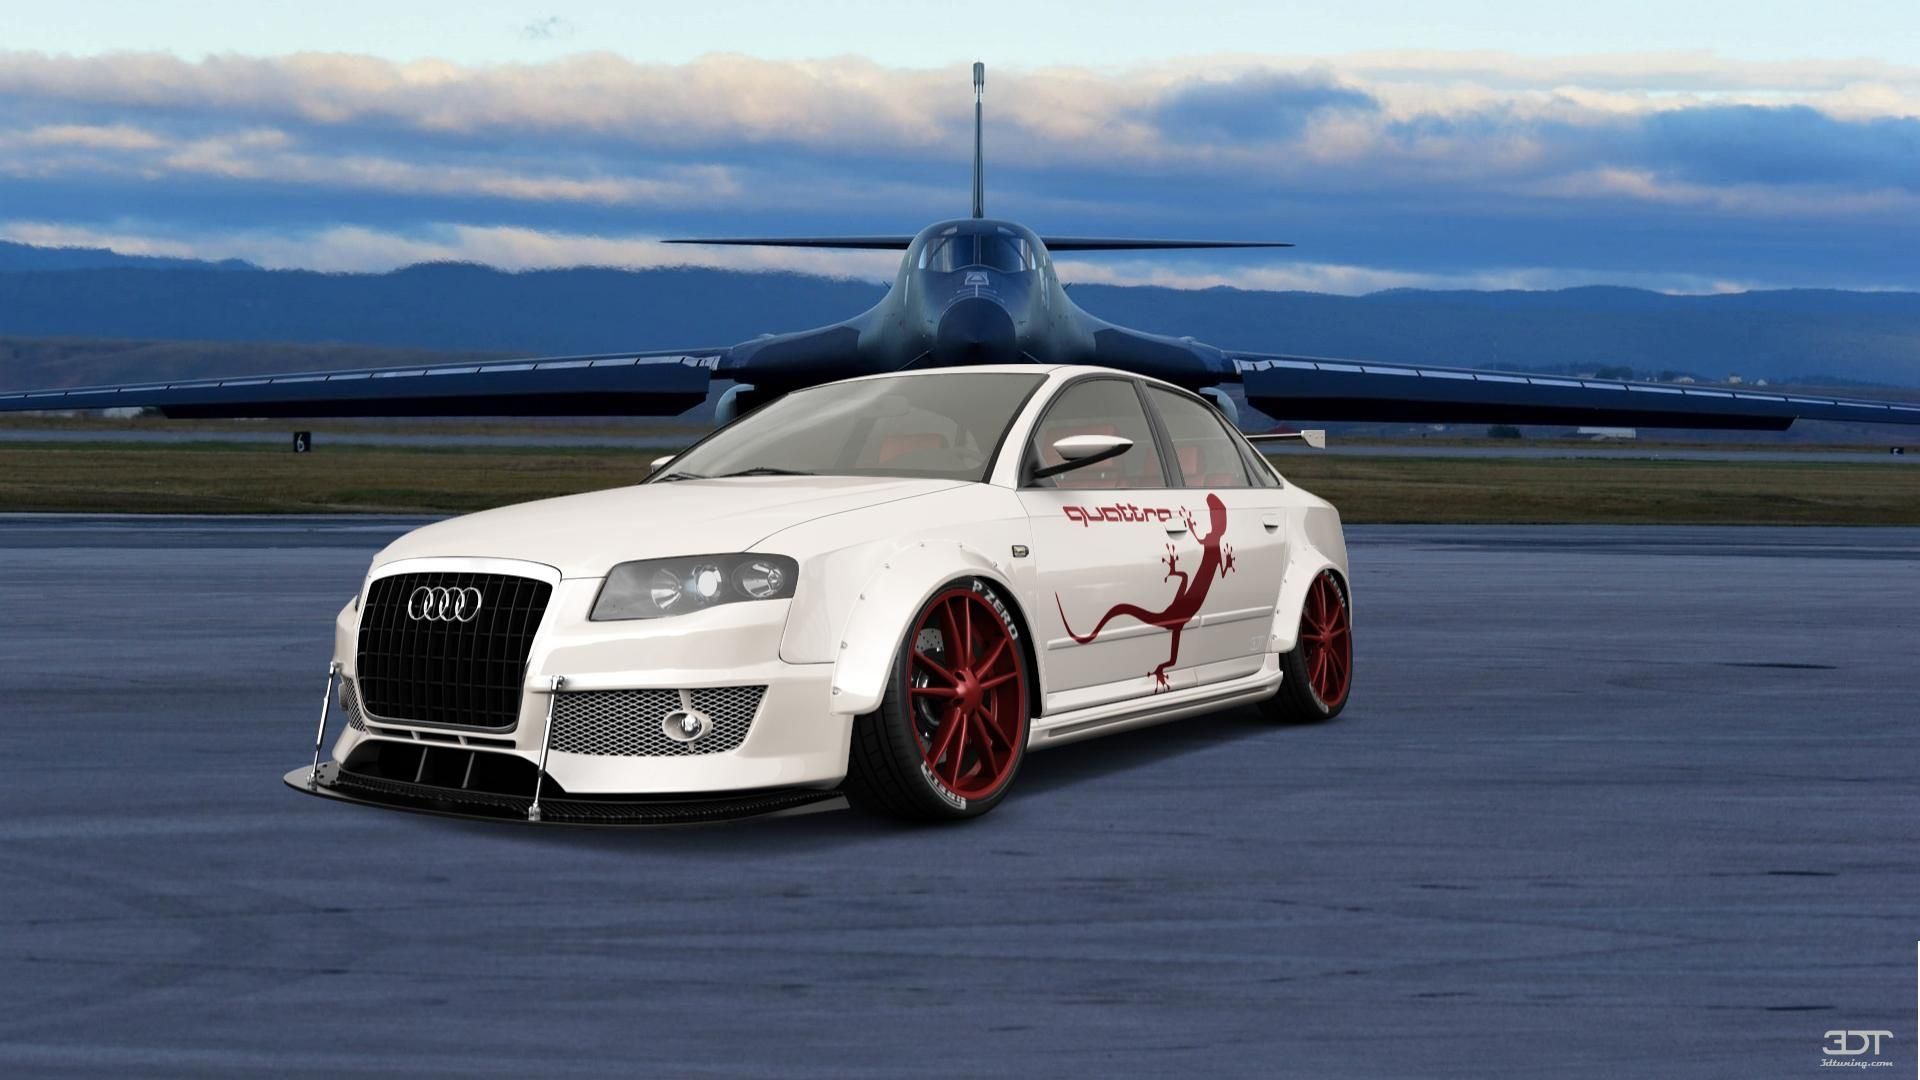 Checkout My Tuning Audi A4 2004 At 3dtuning 3dtuning Tuning New Trucks Audi Small Luxury Cars